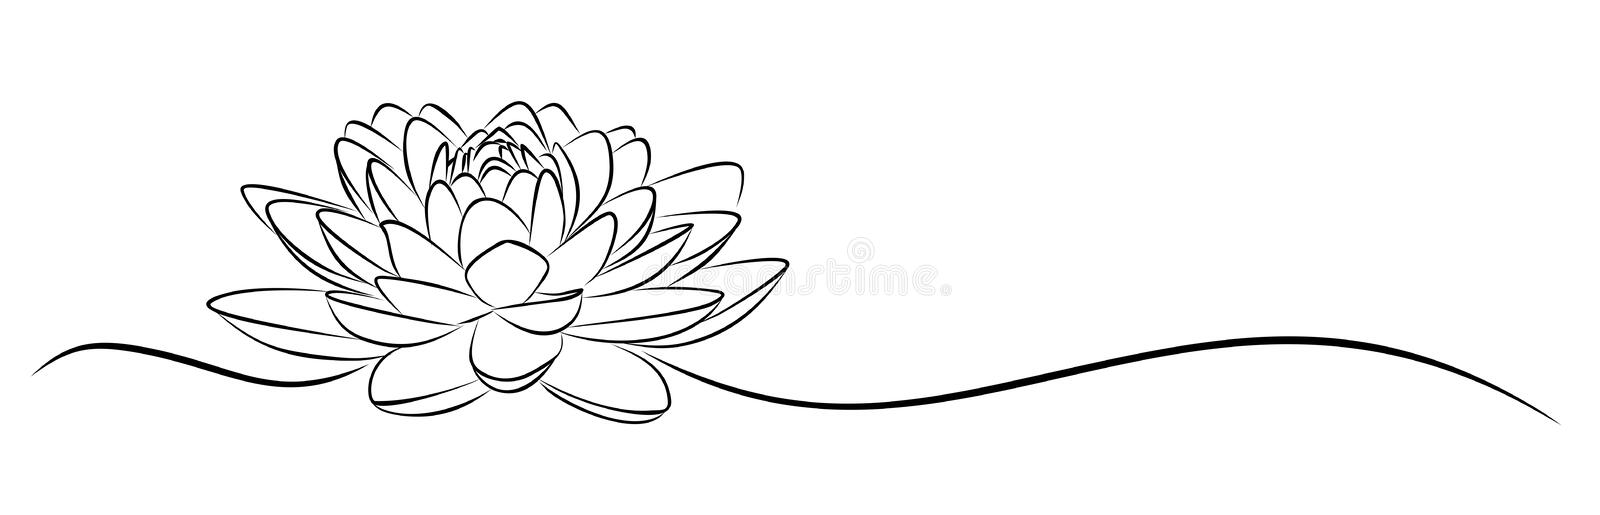 Croquis de Lotus illustration libre de droits